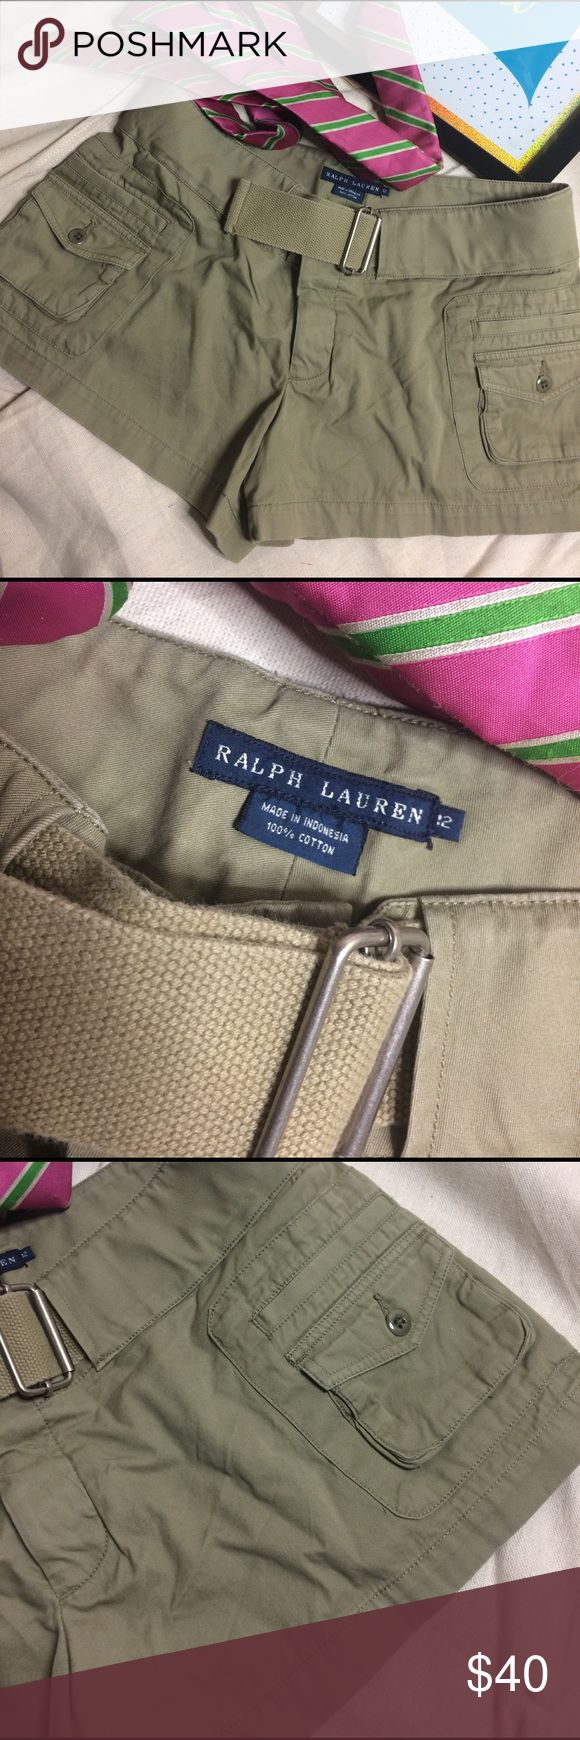 BNWOT Polo by Ralph Lauren Mini Cargo Short w Belt BNWOT Classic Polo By Ralph Lauren mini cargo shorts in classic army green with matching belt.  Hidden 5 button fly closure.  Women's size 12. Polo by Ralph Lauren Shorts Cargos